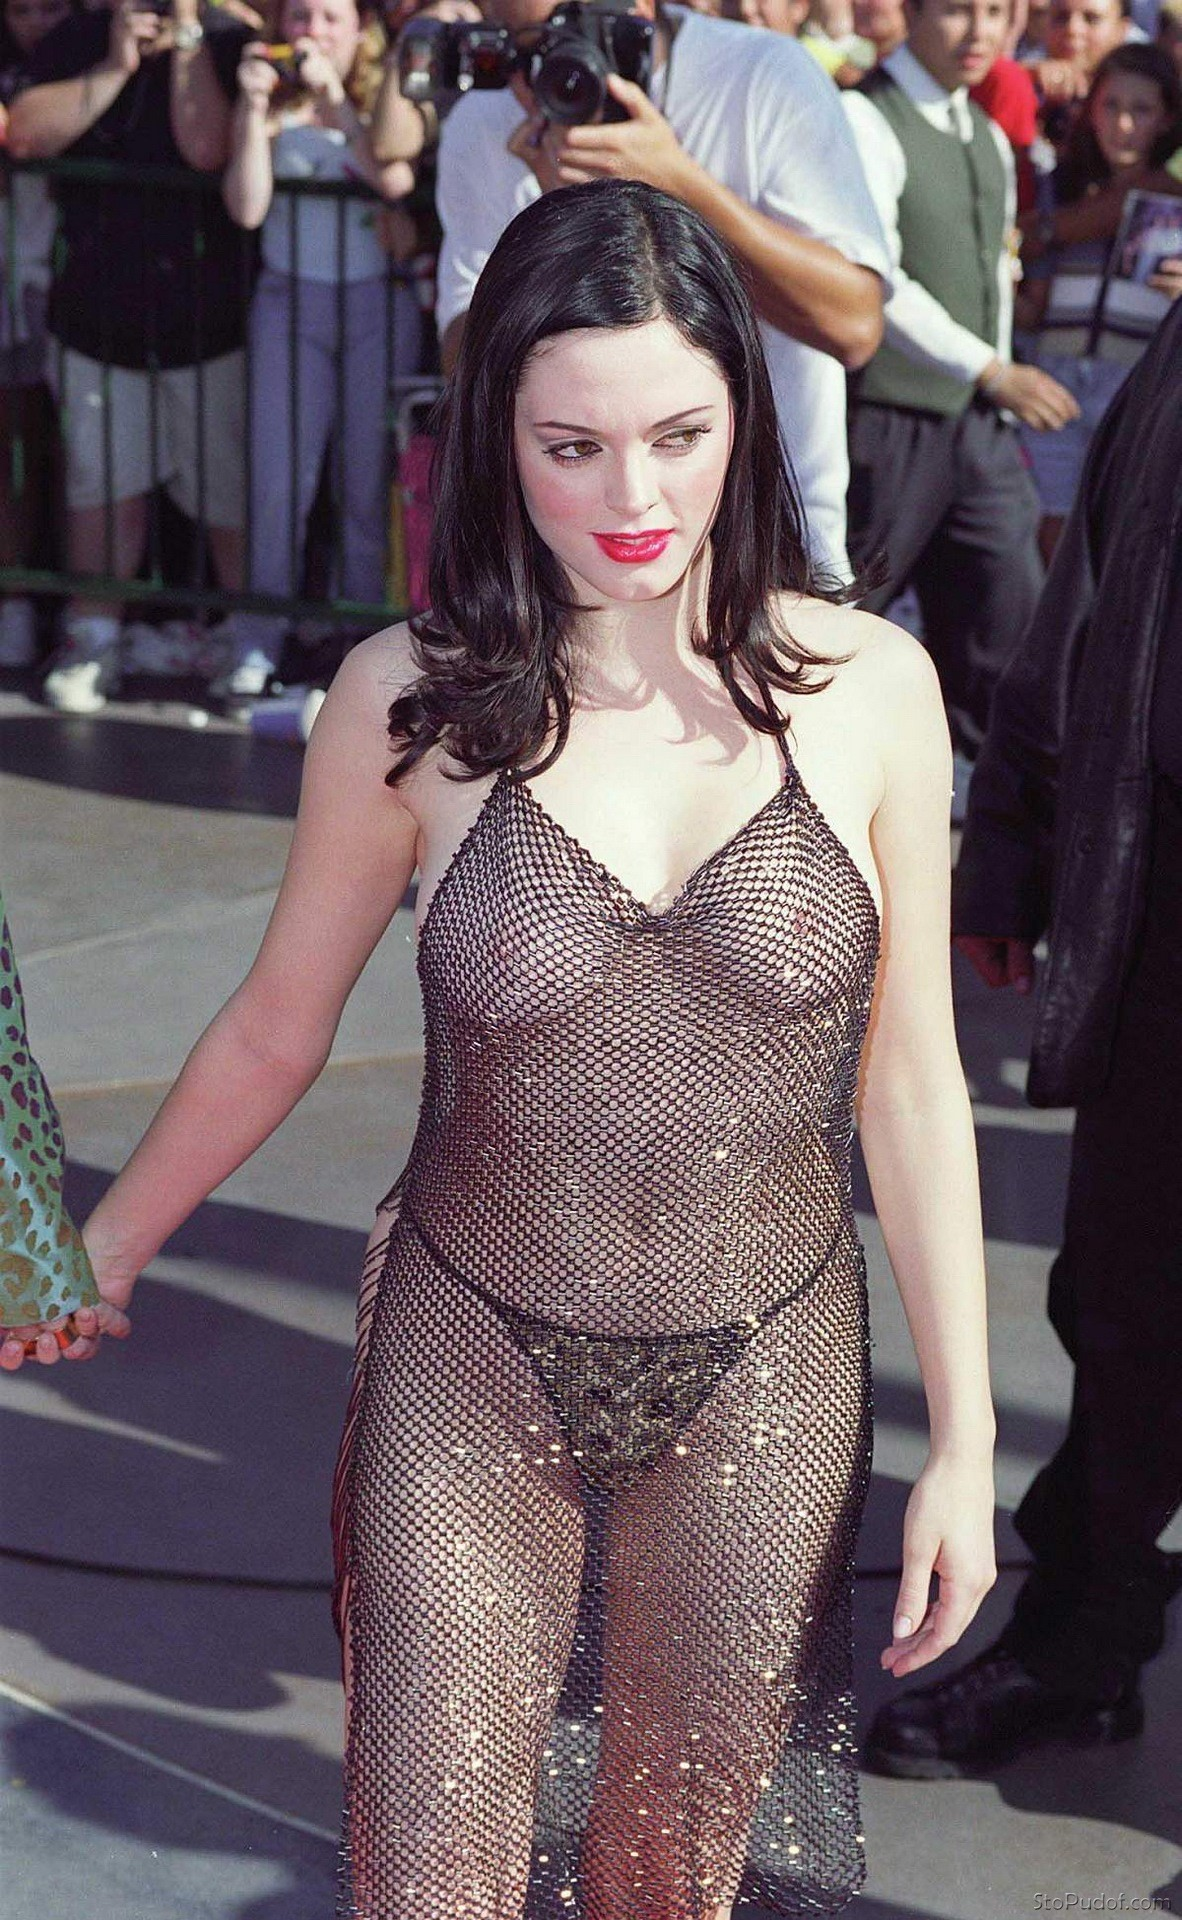 Rose McGowan nude pics leaked uncensored - UkPhotoSafari